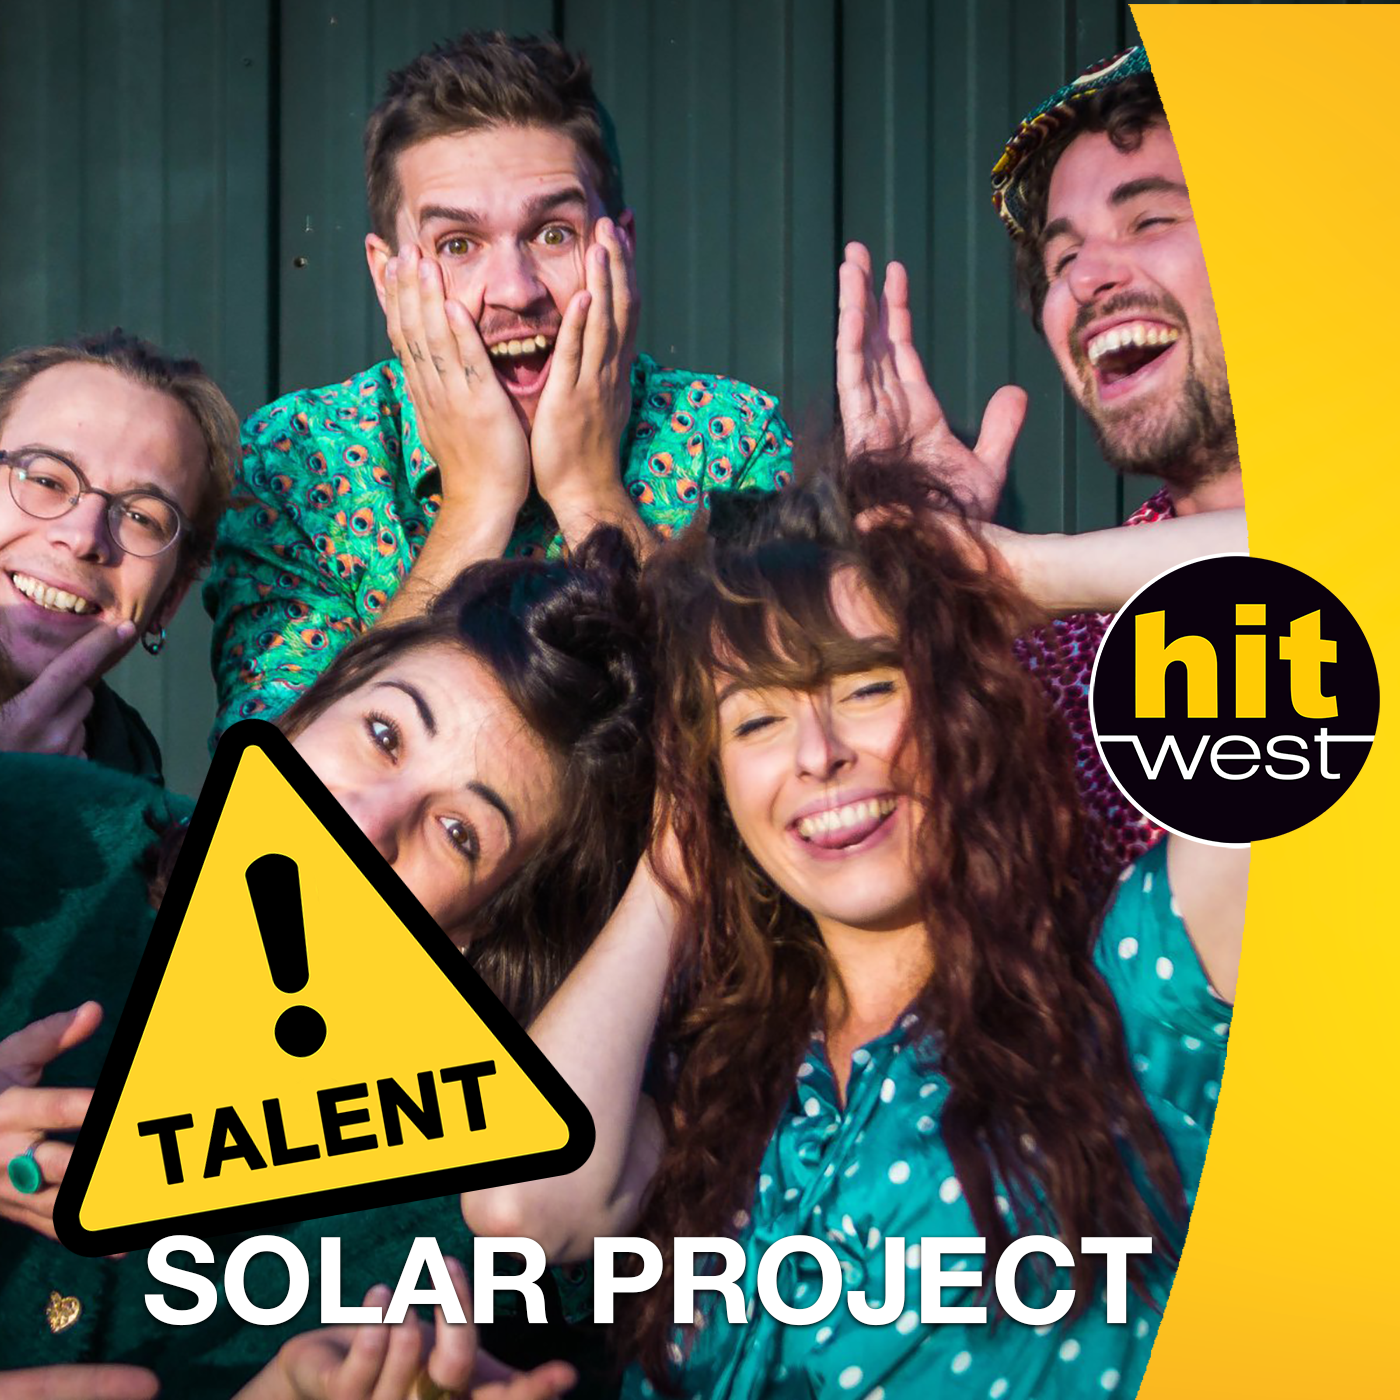 HW-talent-solar-project.png (1.88 MB)